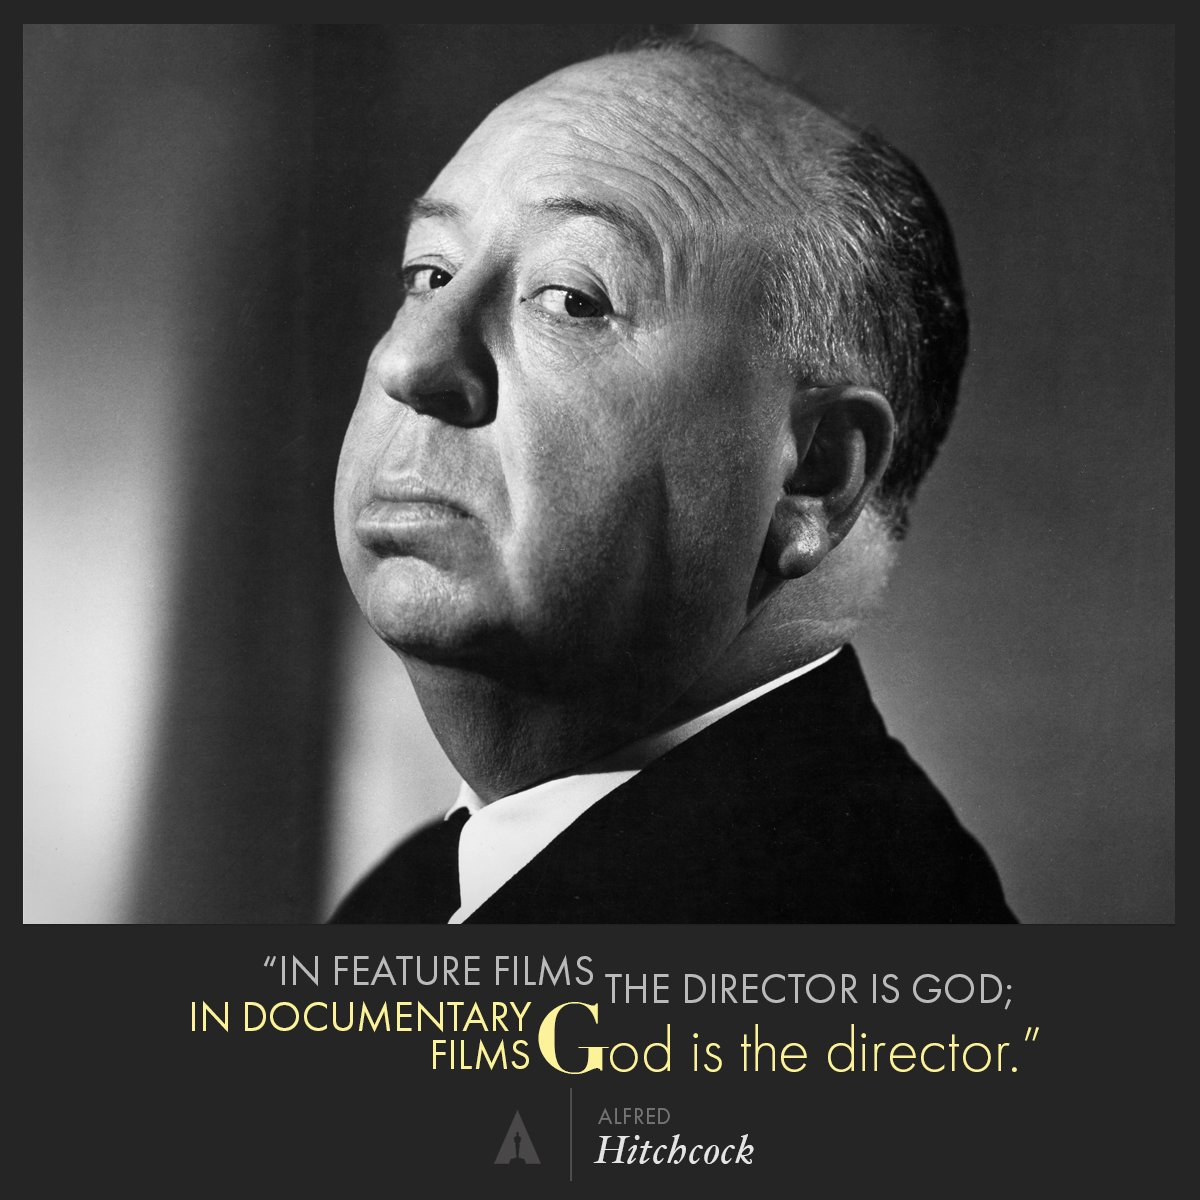 Alfred #Hitchcock on the role of a director. https://t.co/mqh3UdvIcD